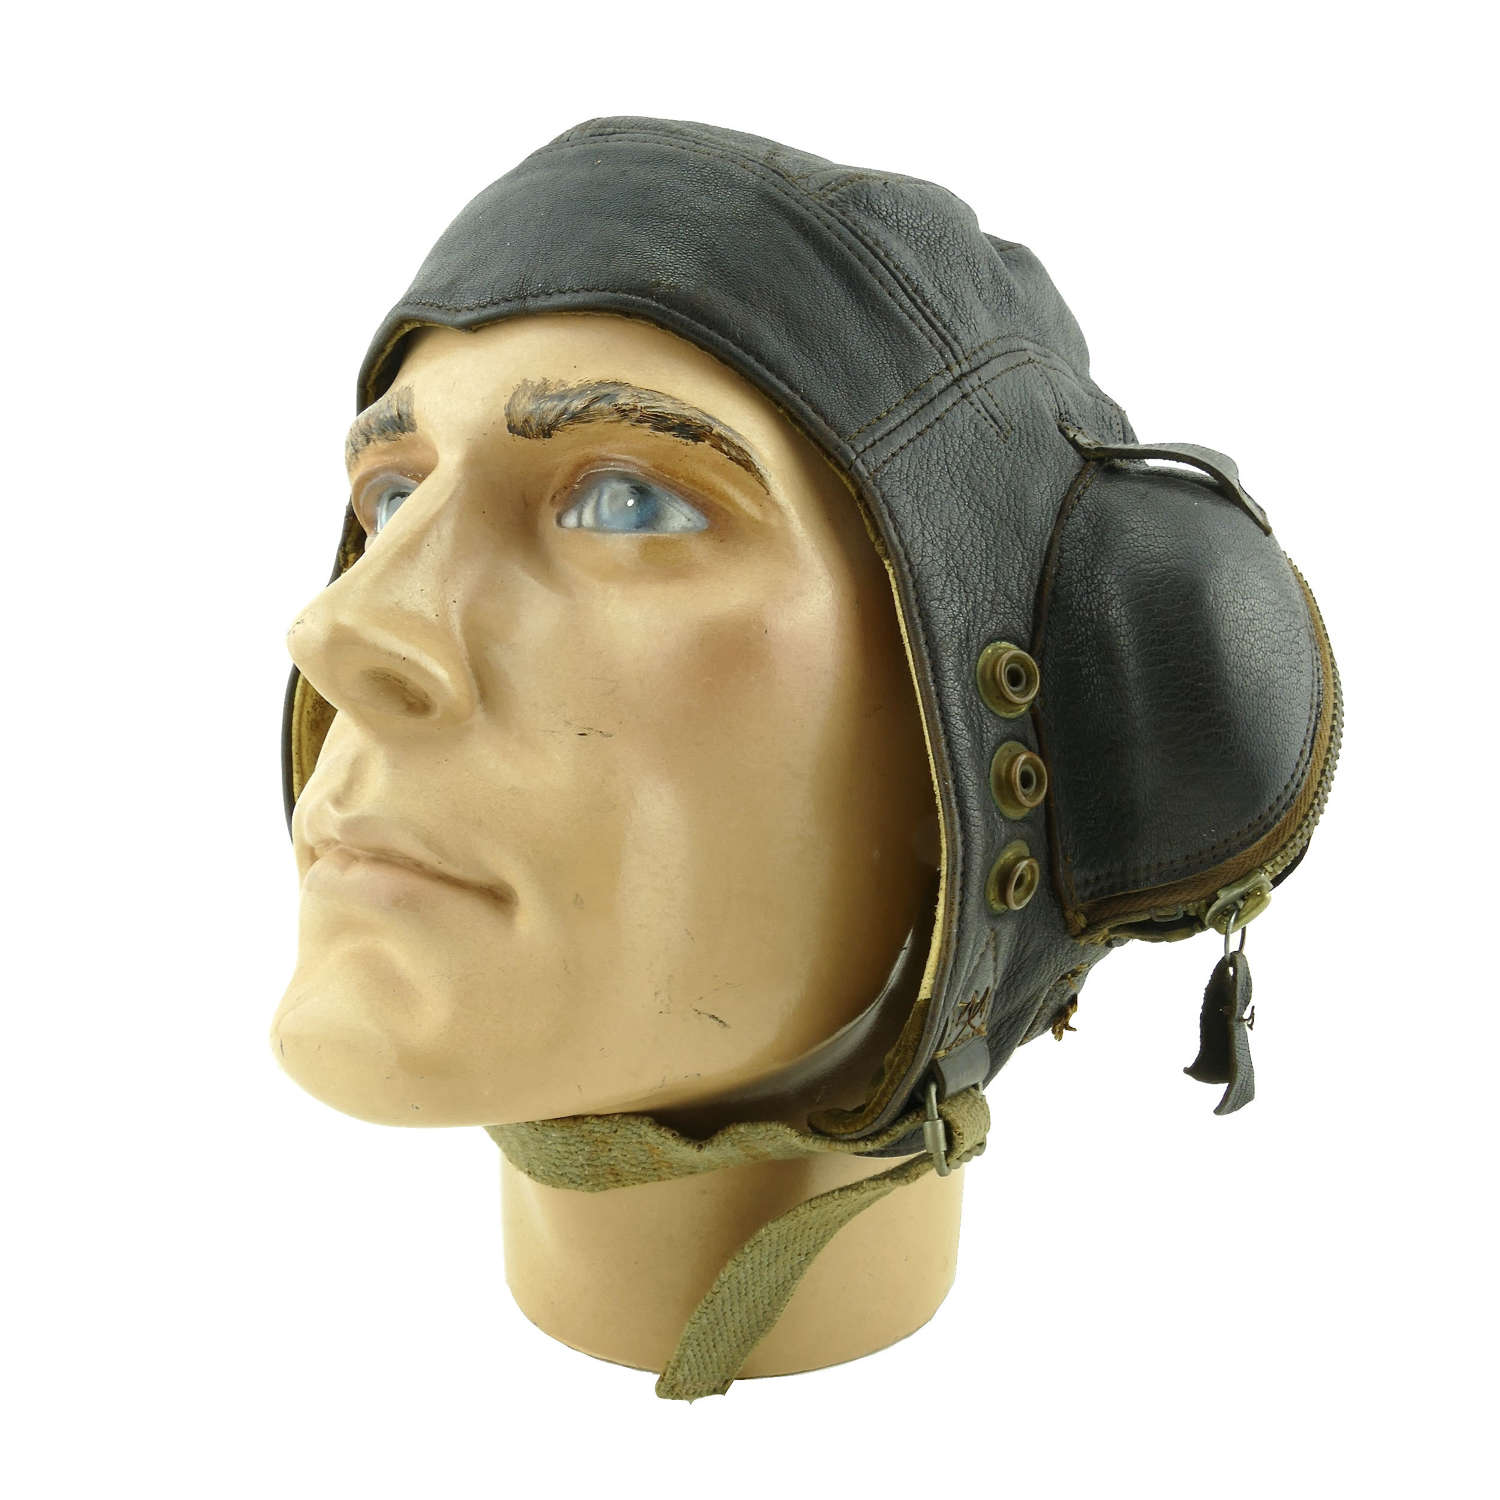 RN / FAA C-type flying helmet, late pattern